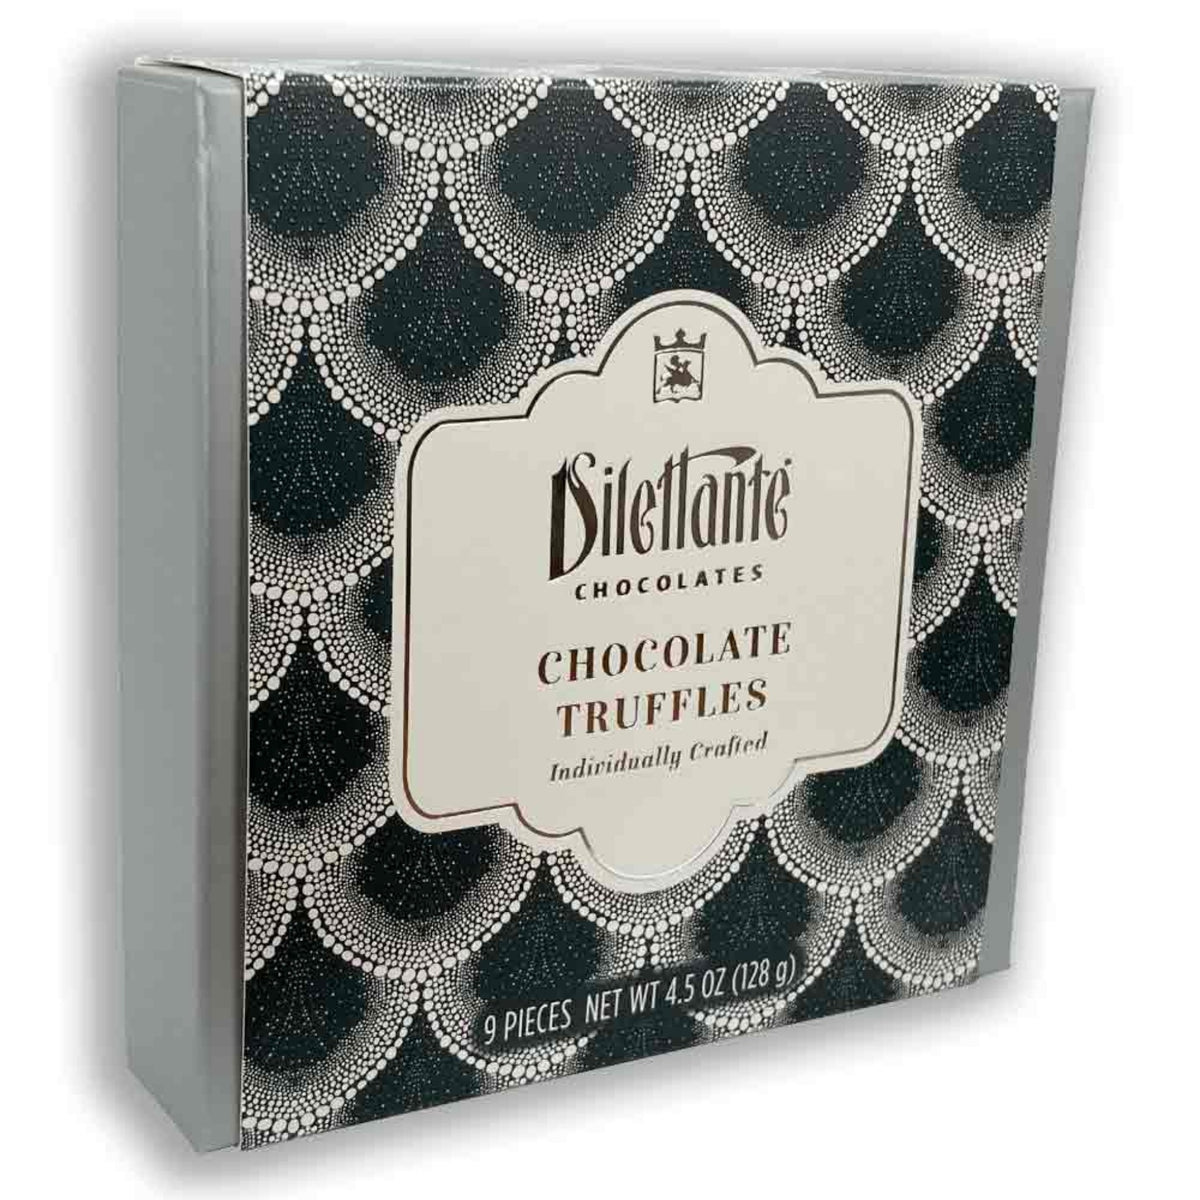 Dilettante Chocolates Individually Crafted Chocolates Truffles in a 9-Piece Black Gift Box